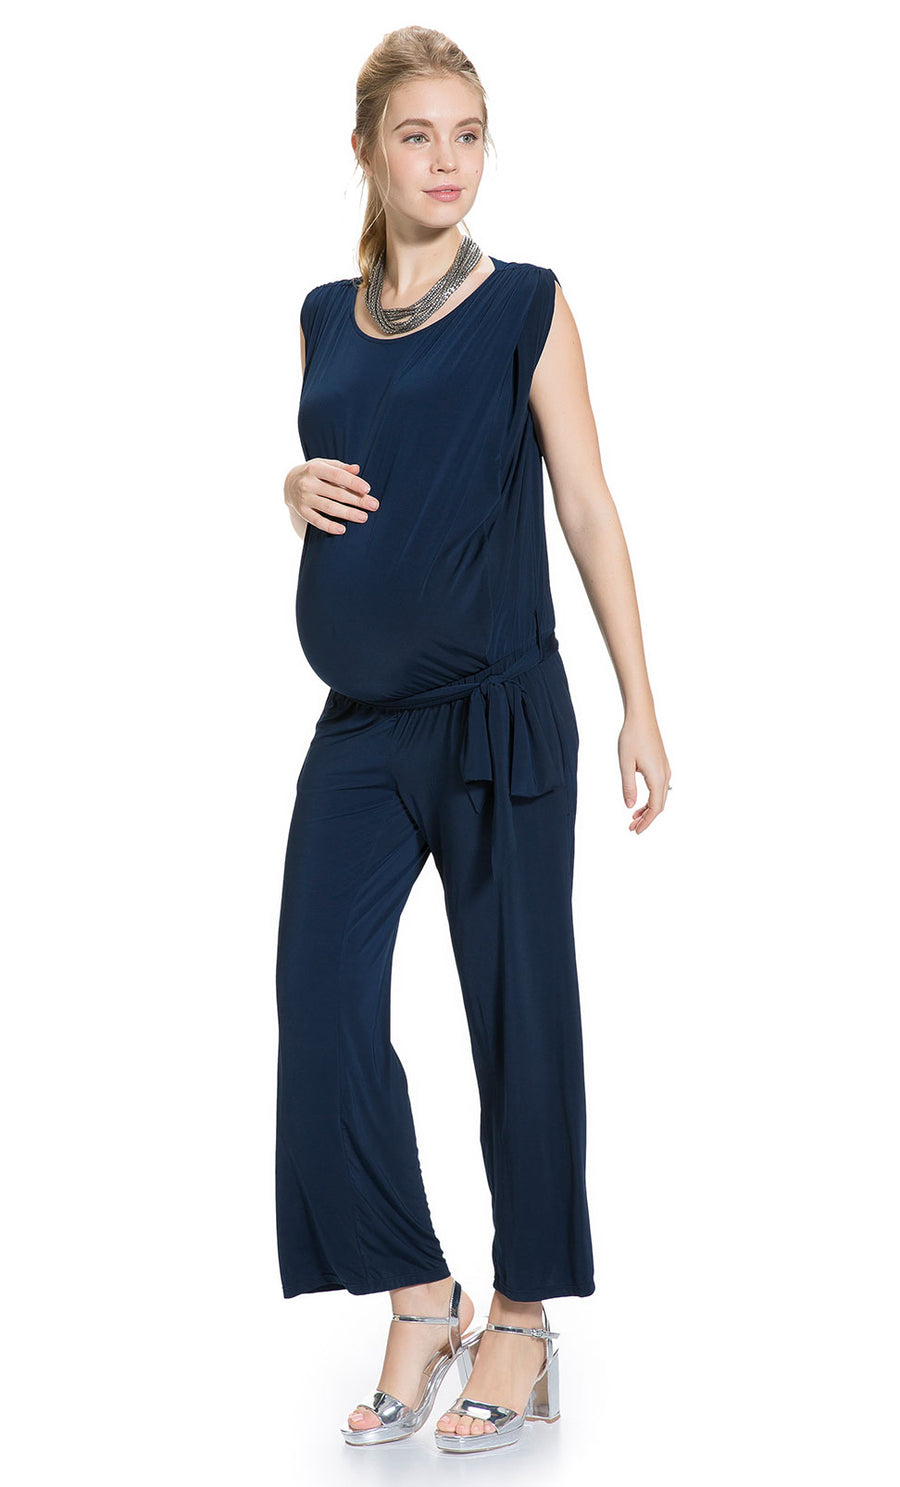 e857ea278ea6 Maternity Jumpsuits   Rompers - Stylish Pregnancy Clothes - Mayarya